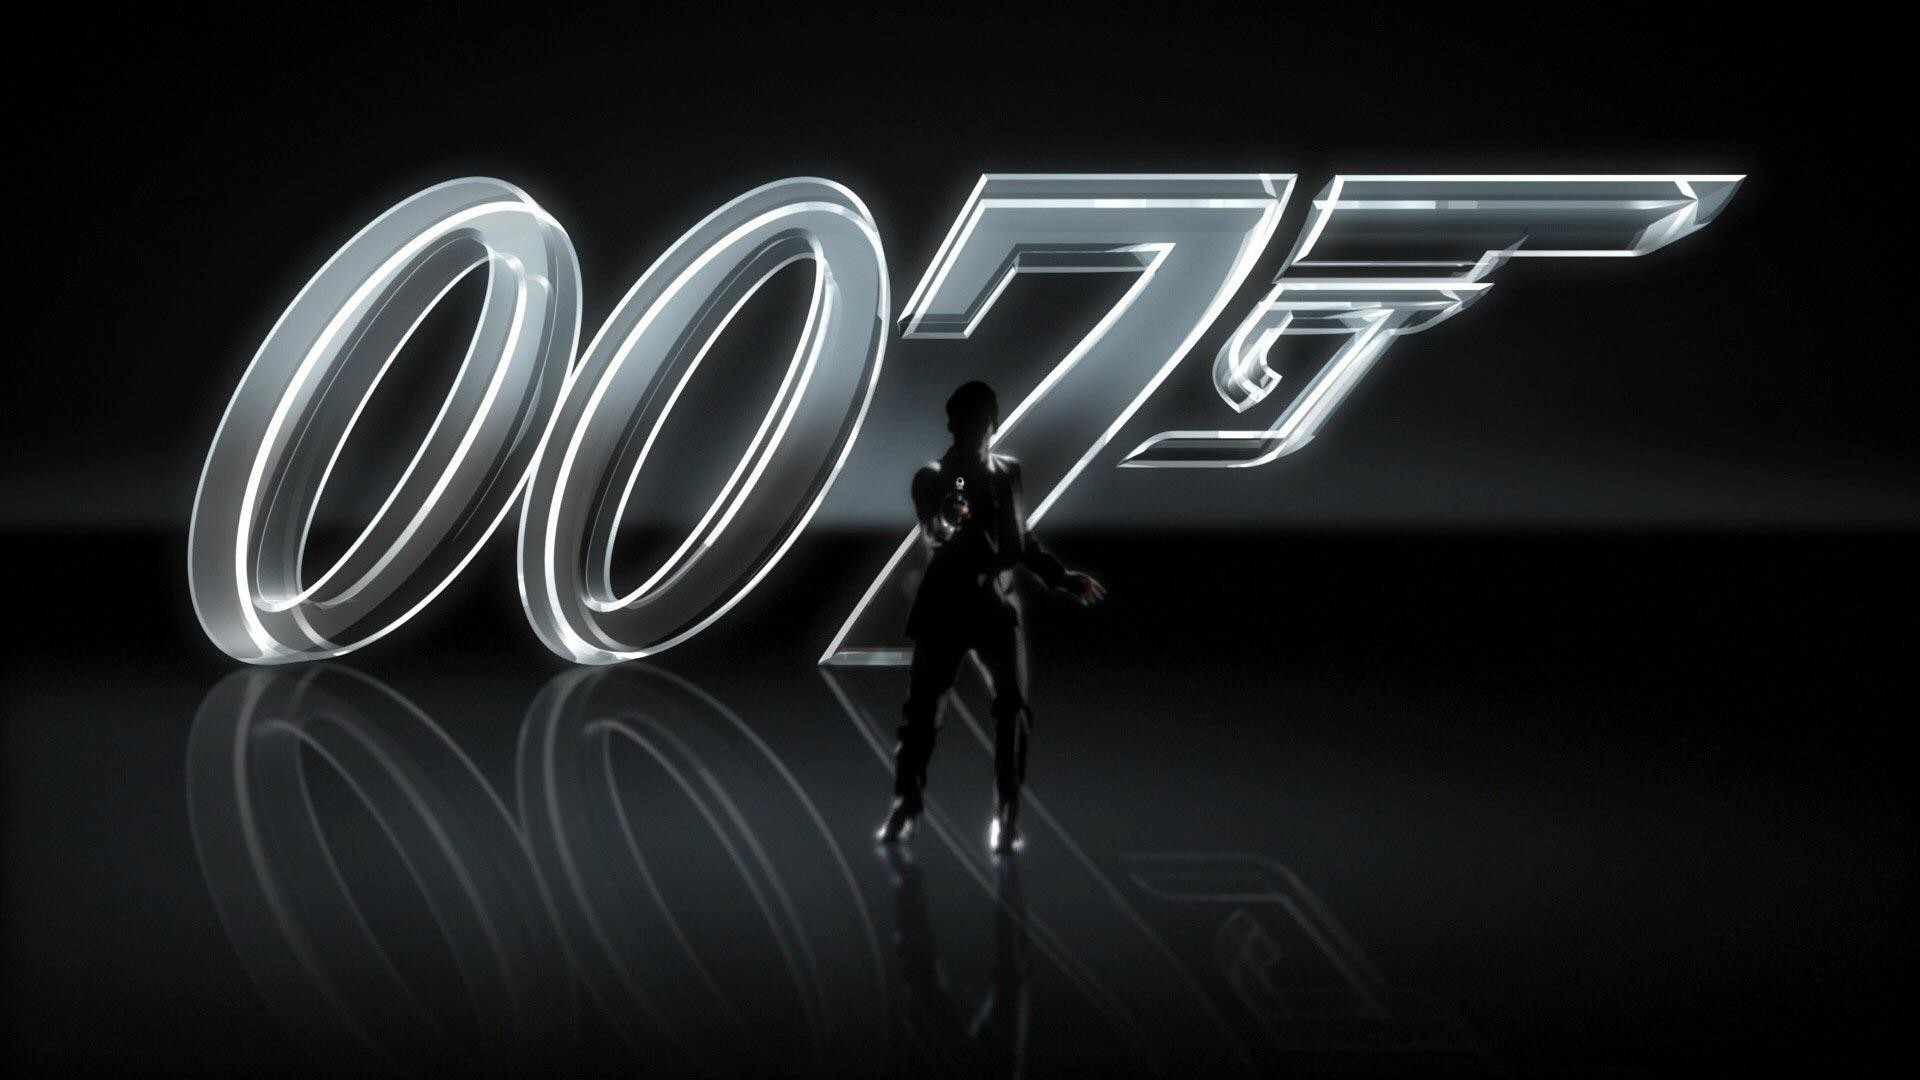 James Bond 007 Wallpaper 63 images 1920x1080